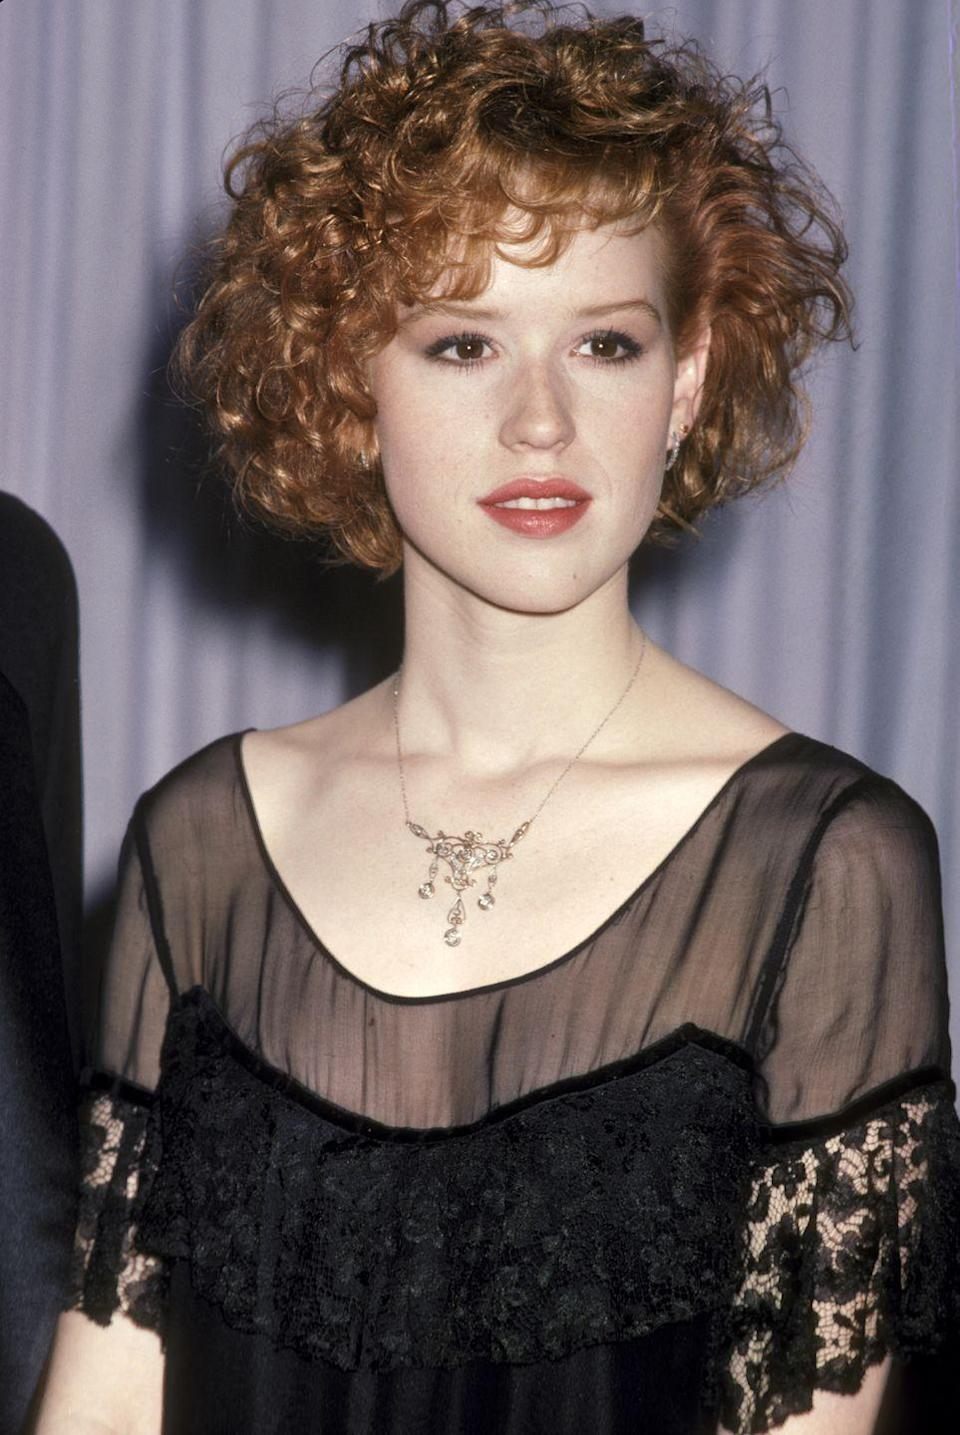 <p>When Molly Ringwald showed up with her glorious mess of red curls, the world fell in love.</p>